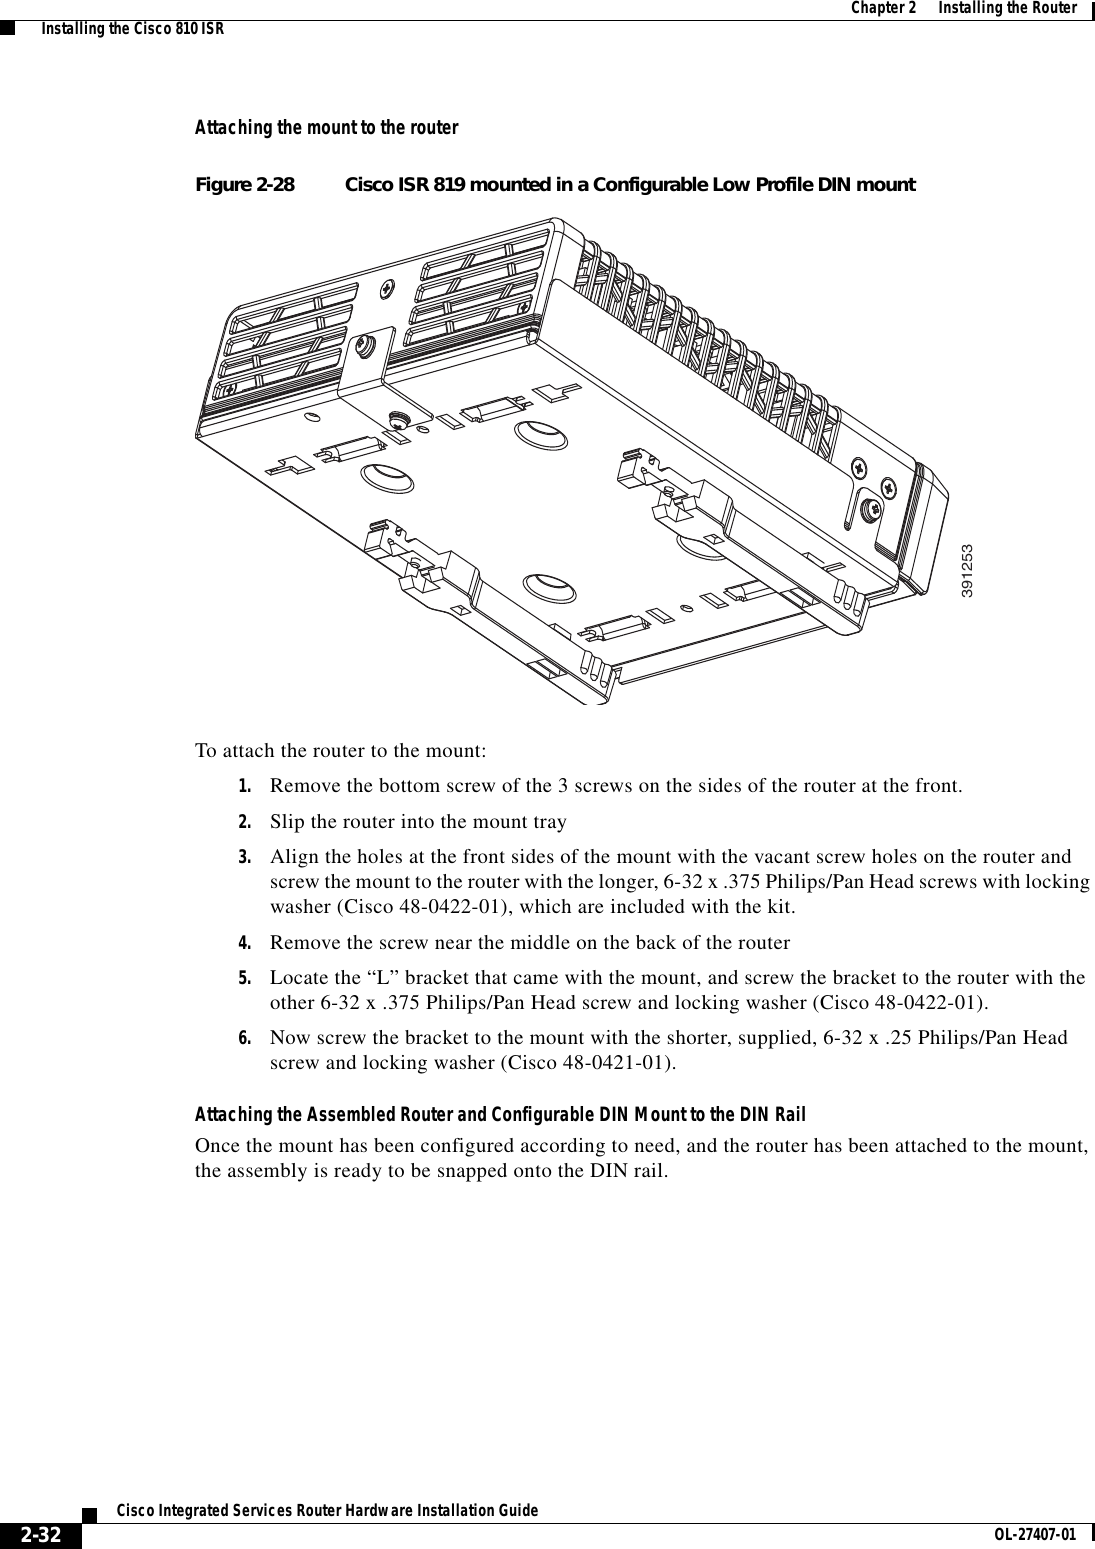 Cisco Systems Integrated Services Router Users Manual 800 Series